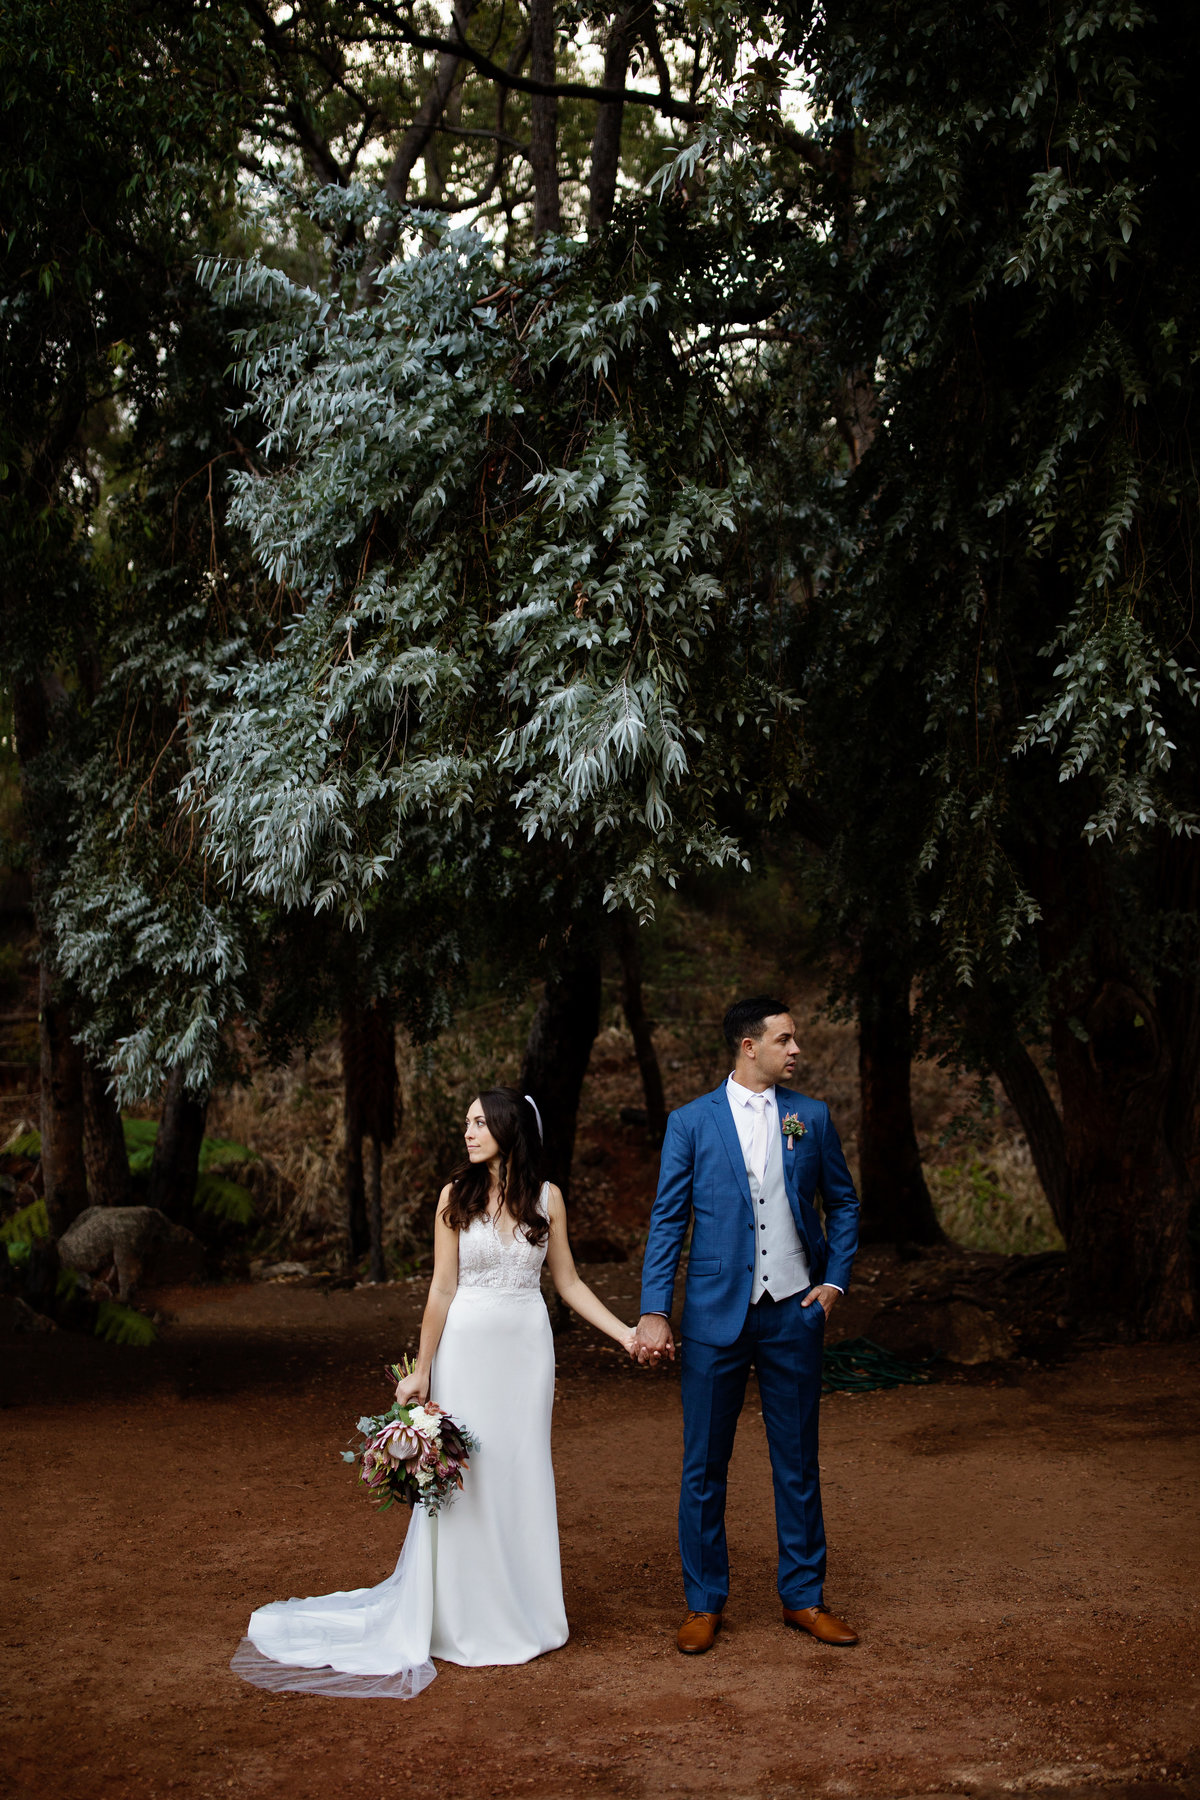 CLARISSA+RYAN-WEDDING-145